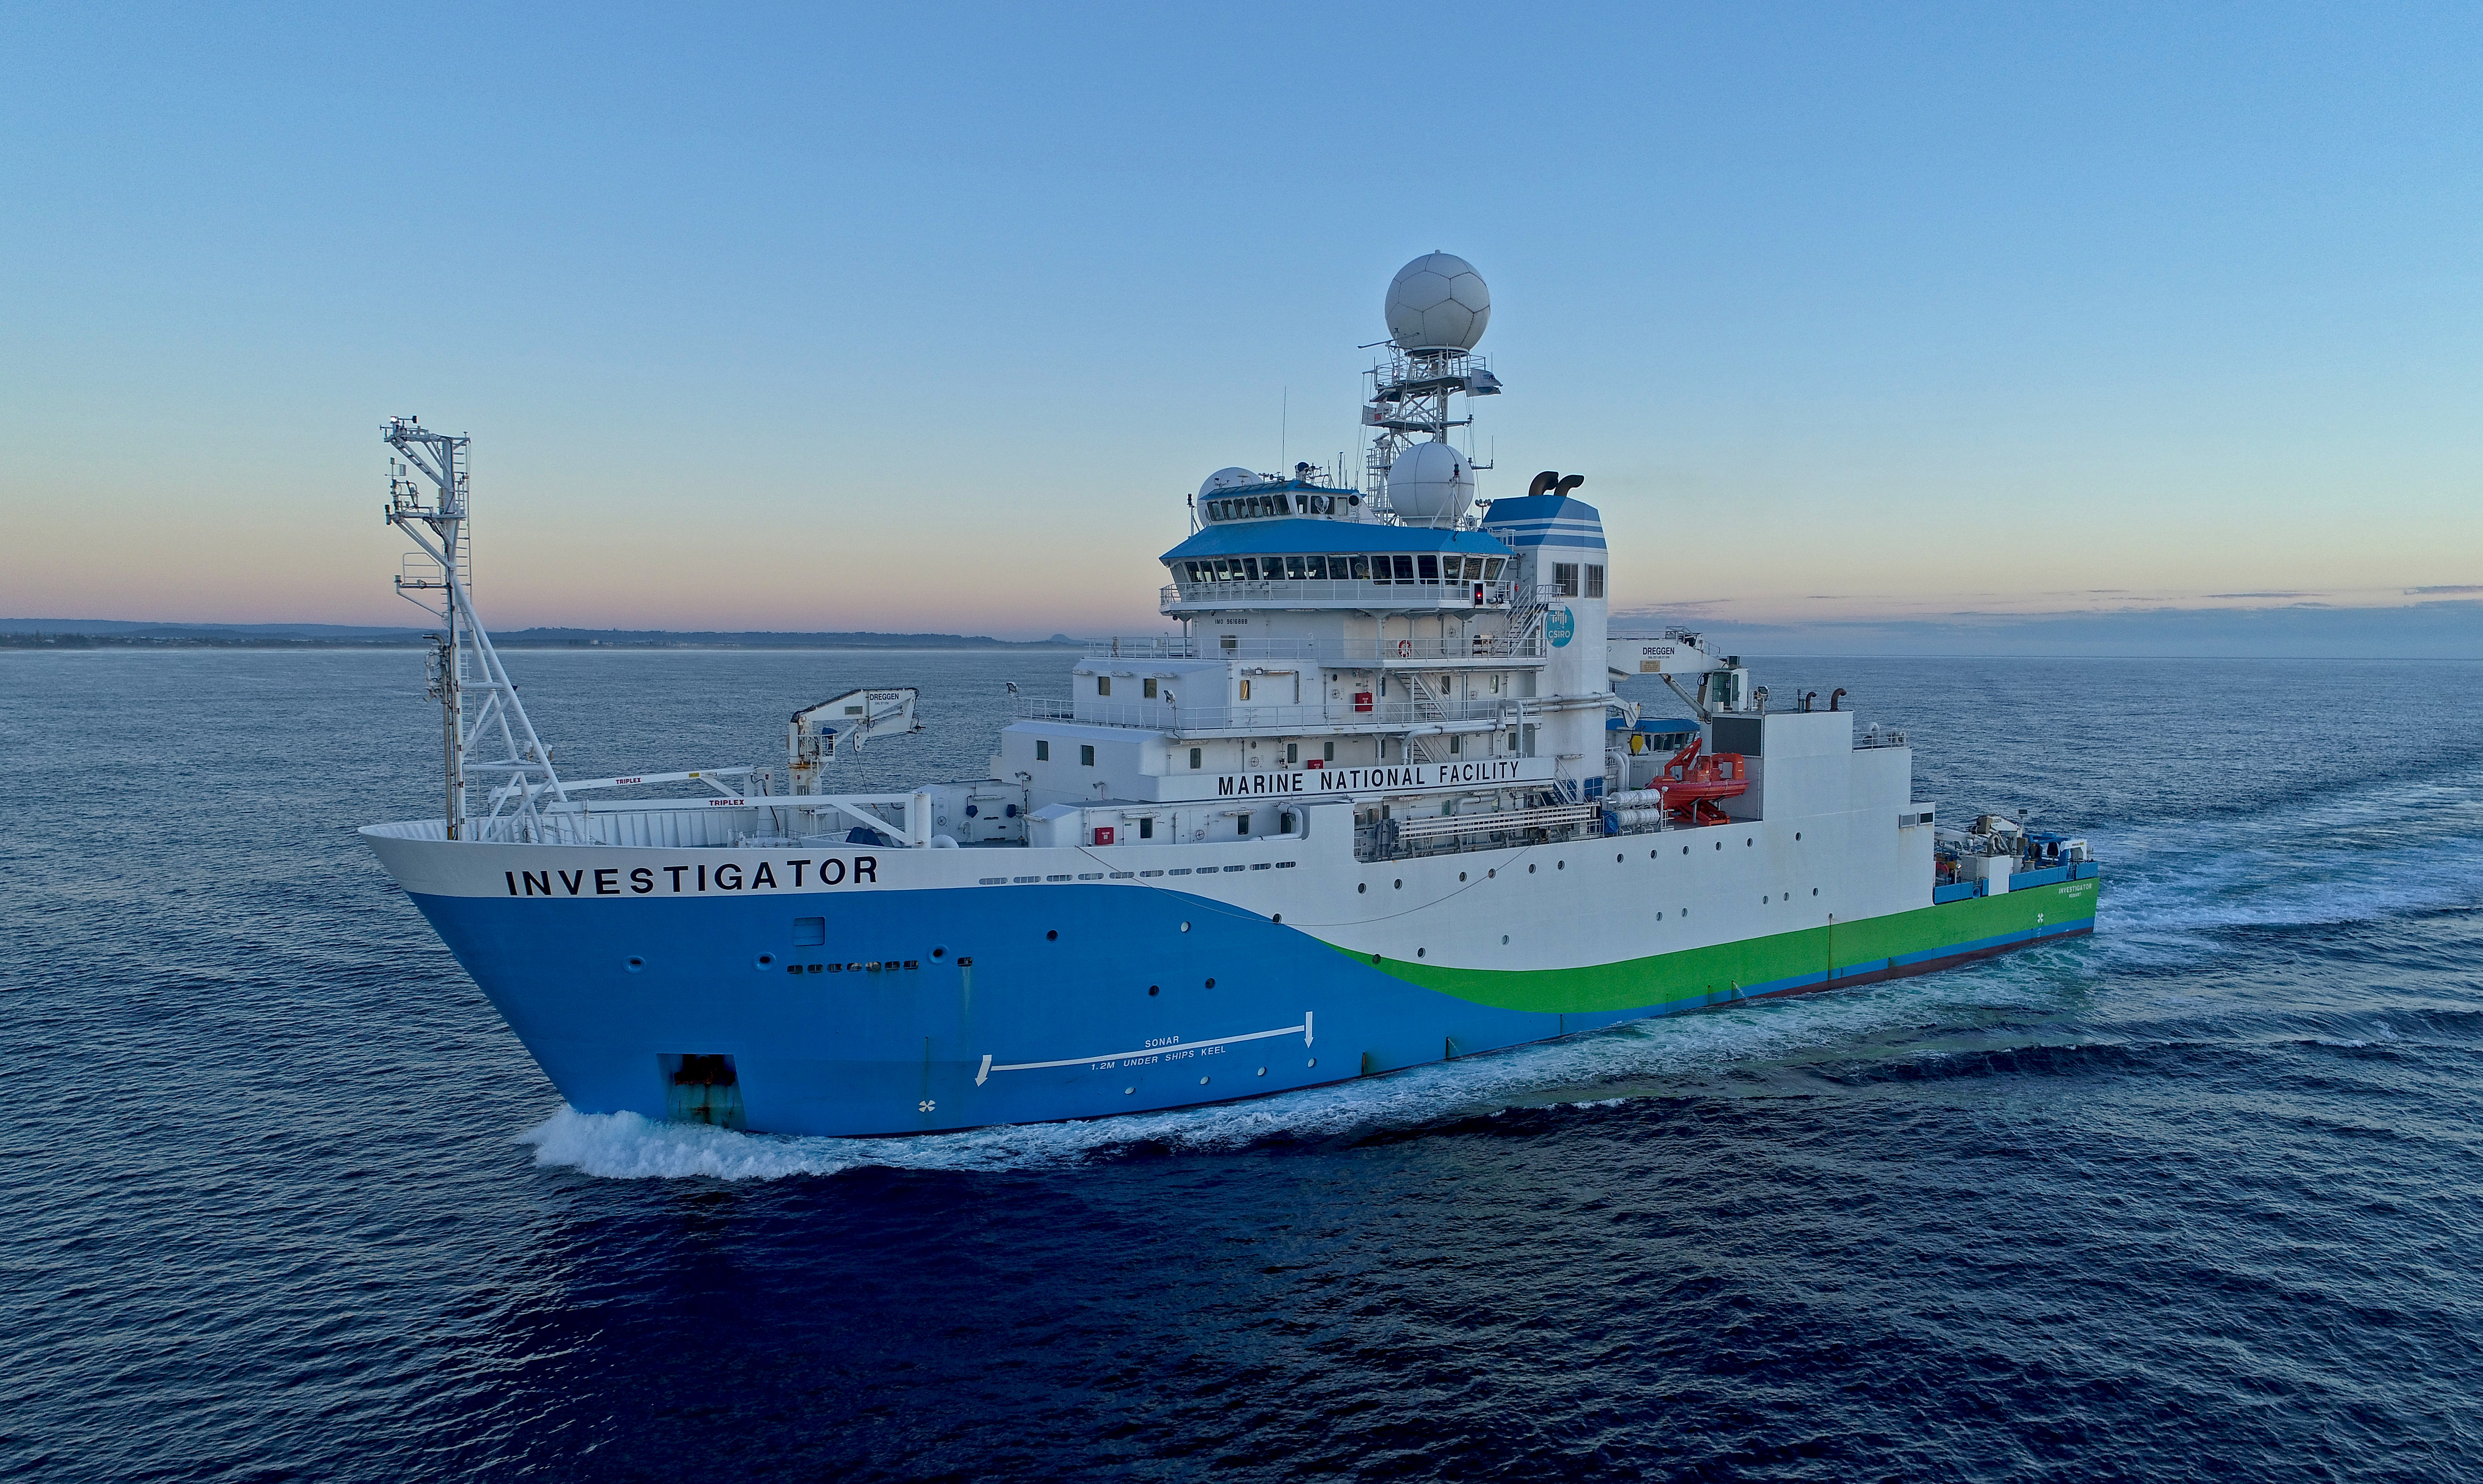 CSIRO research vessel RV Investigator.